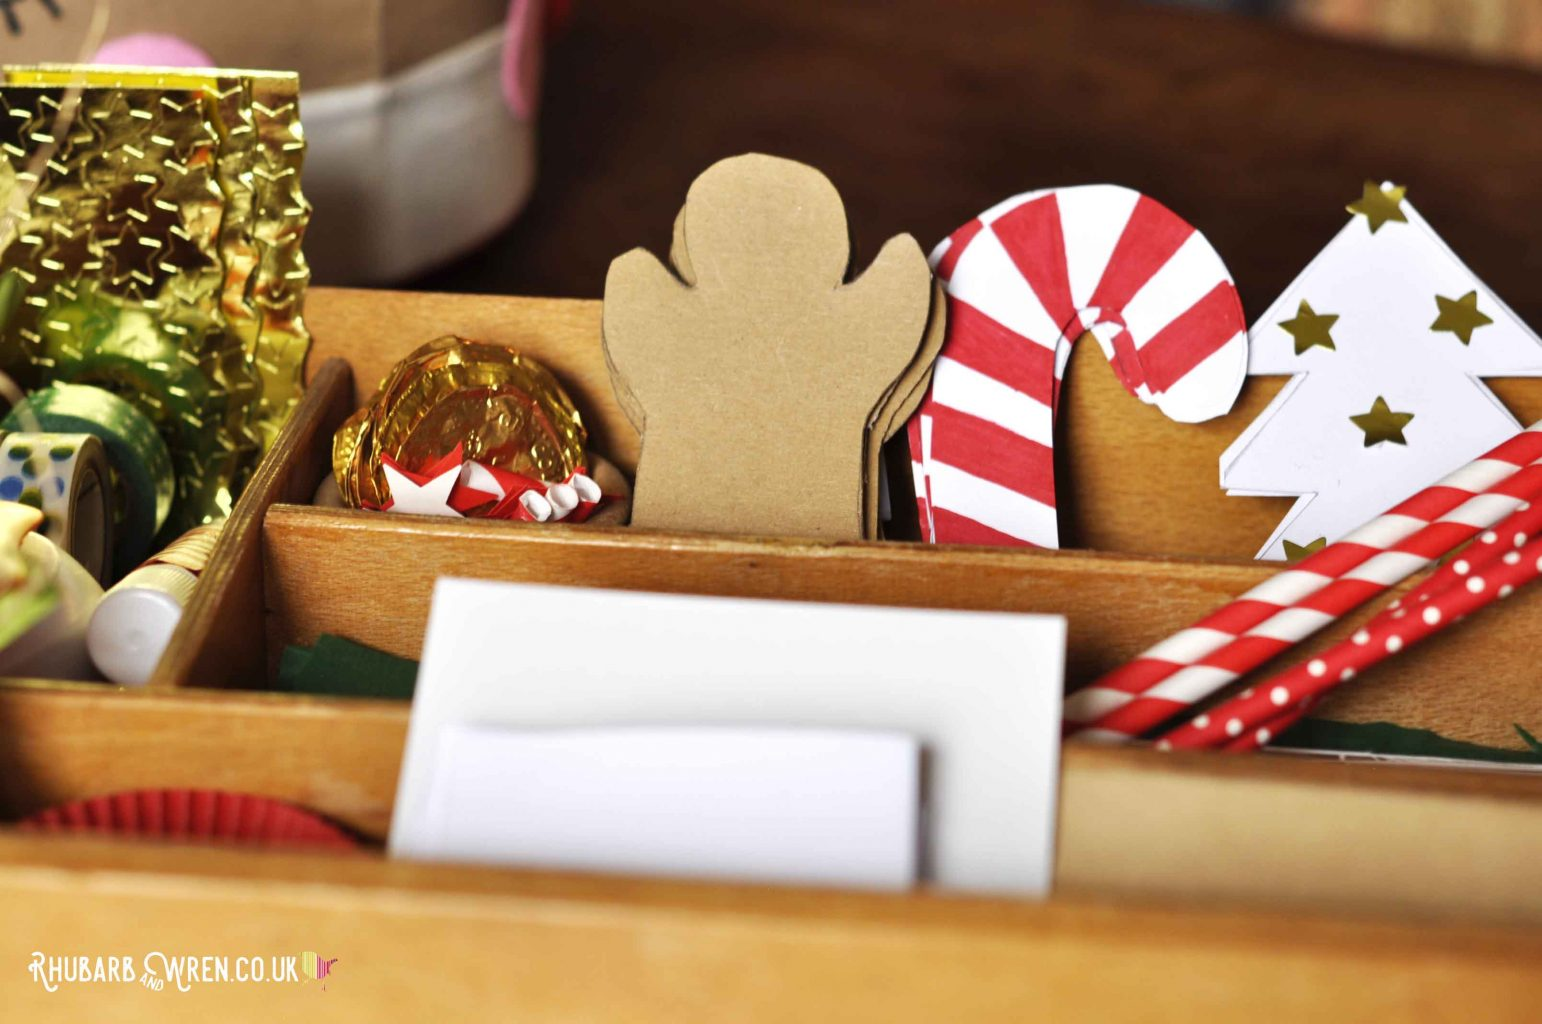 Tray full of card and paper cut into christmas shapes for children's crafts